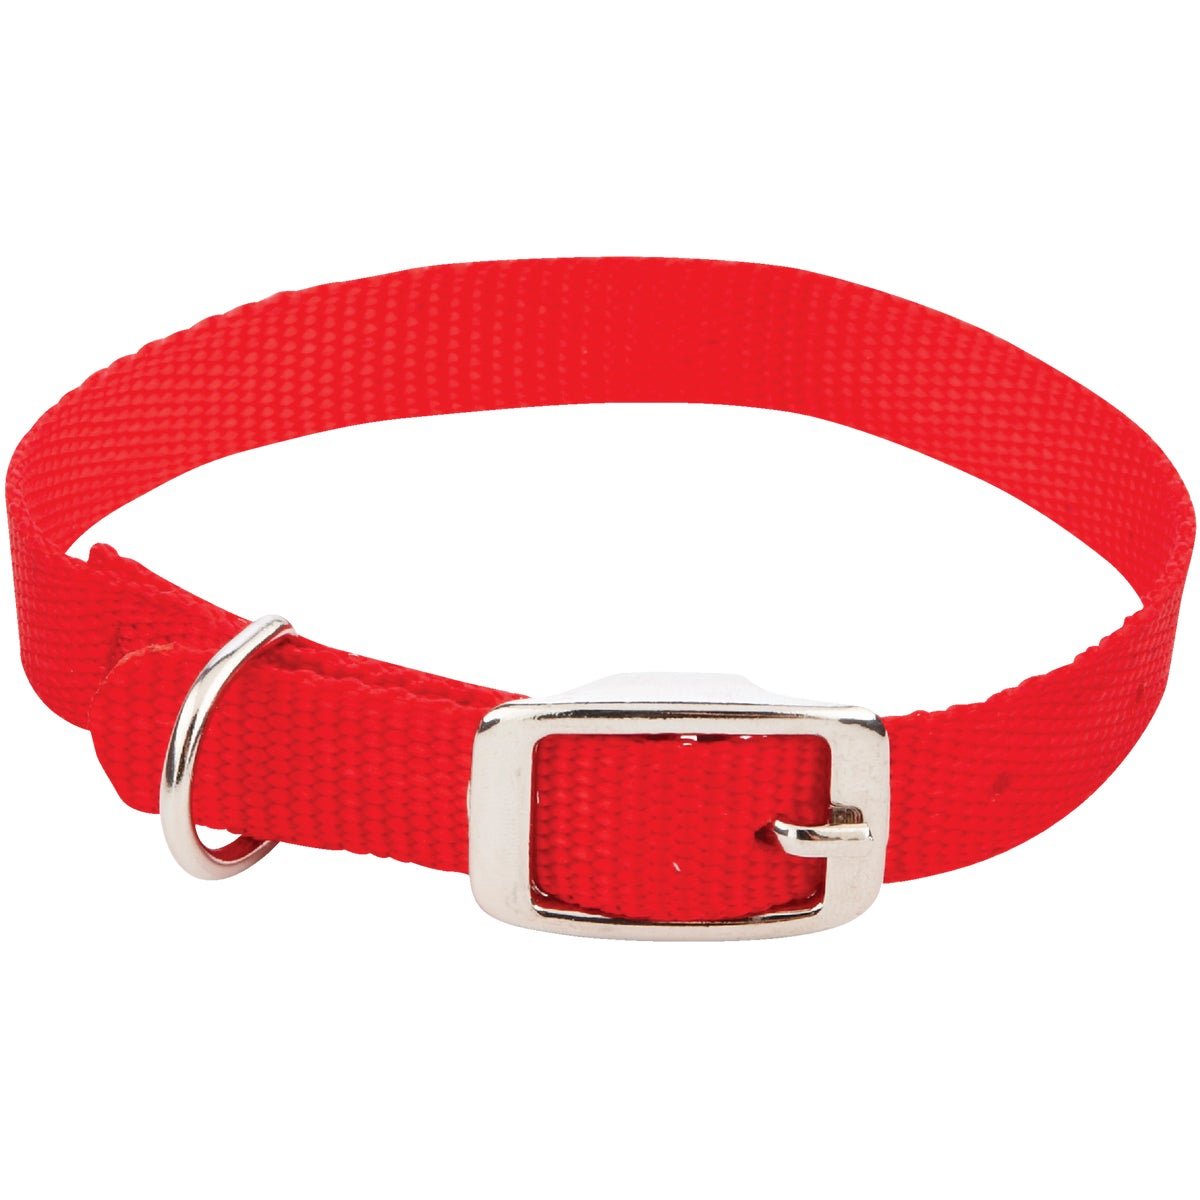 5/8X16 NYLON COLLAR - 31416 by Westminster Pet